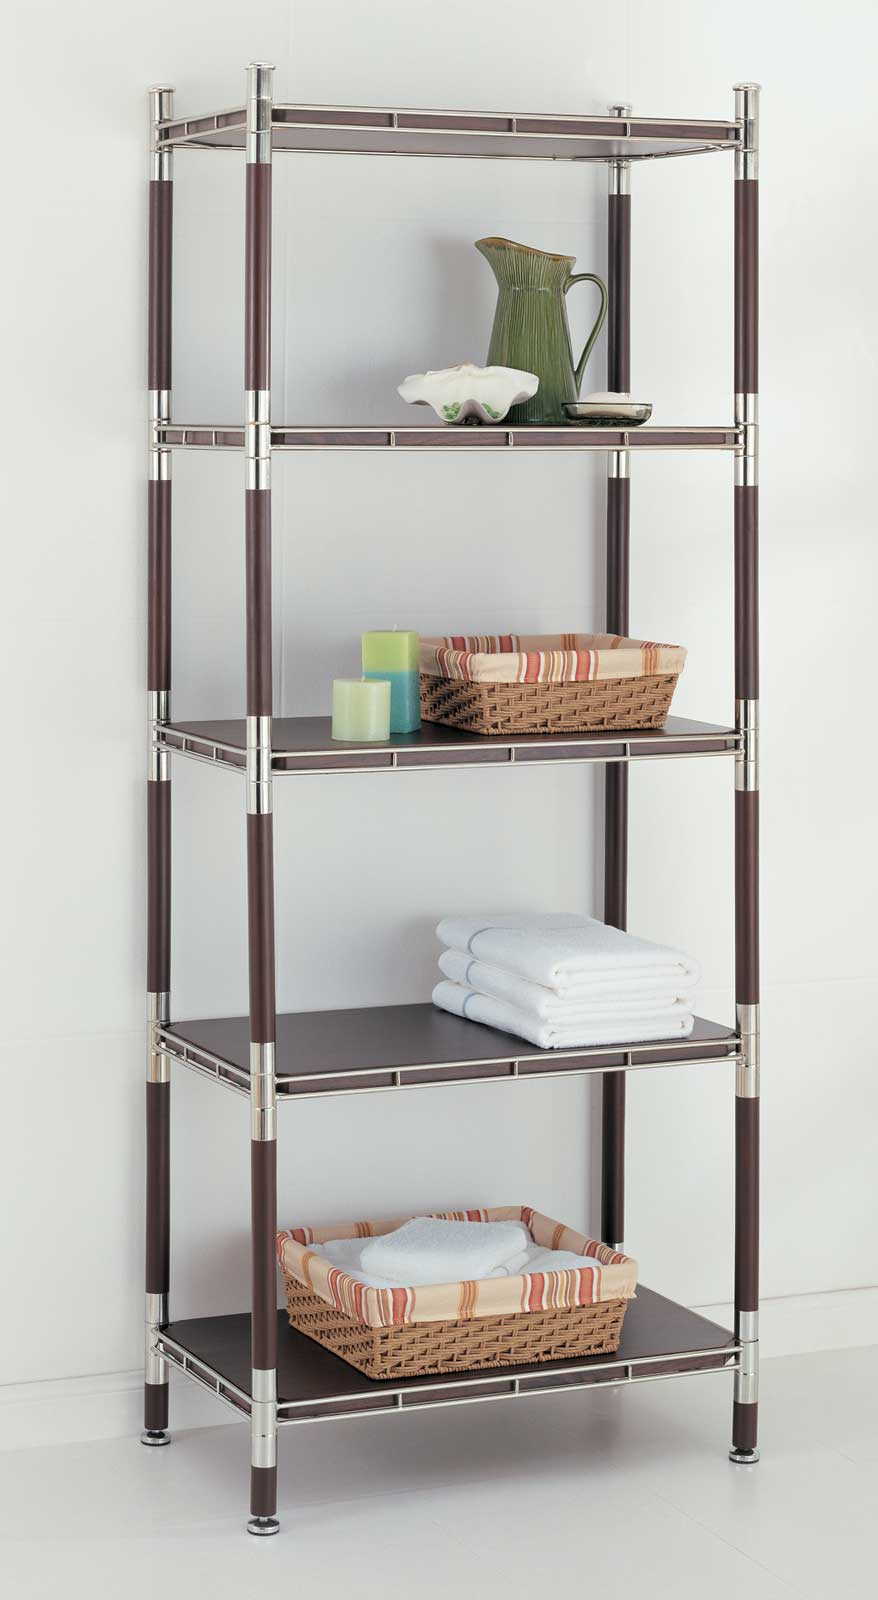 5Tier Wood and Chrome Shelving Unit in Bathroom Shelves